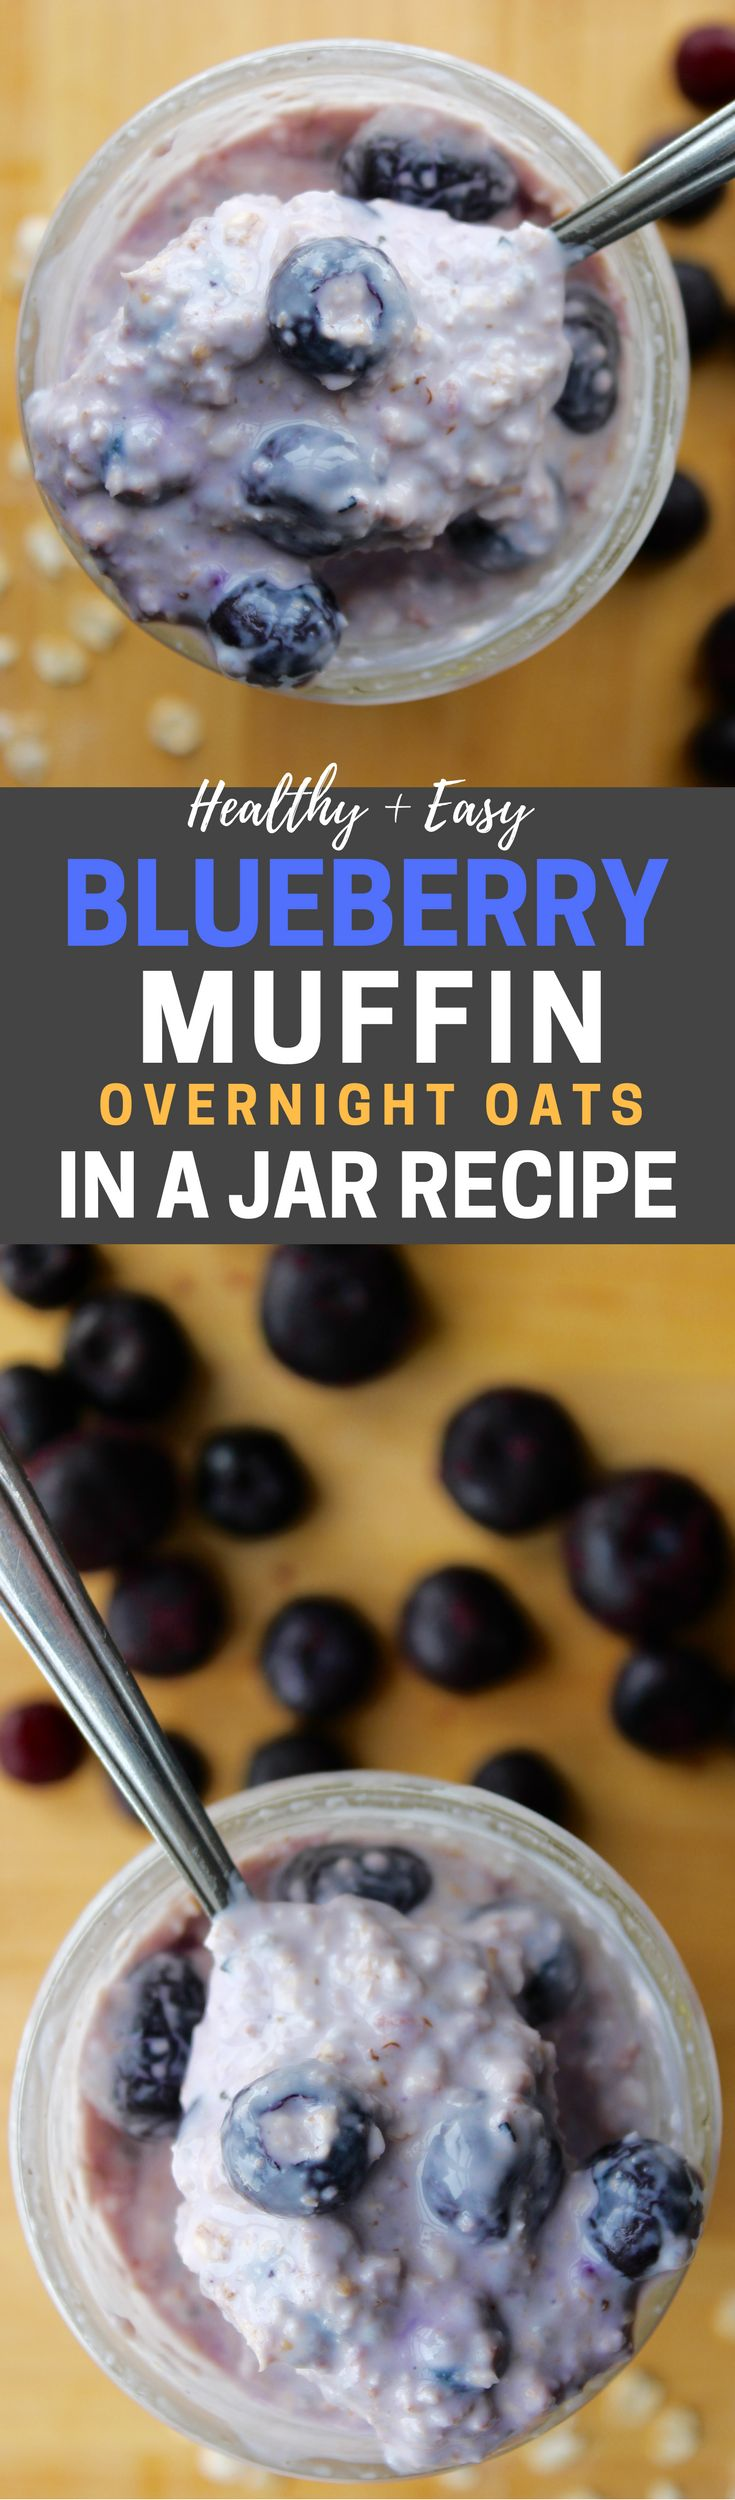 Healthy and Easy Blueberry Pie Overnight Oats In A Jar Recipe! This is one of my favorite overnight oatmeal recipes, and it's such a fantastic healthy breakfast idea. Plus, it's low in calories, and this recipe has 10g of protein so it's great for Weight Watchers too.